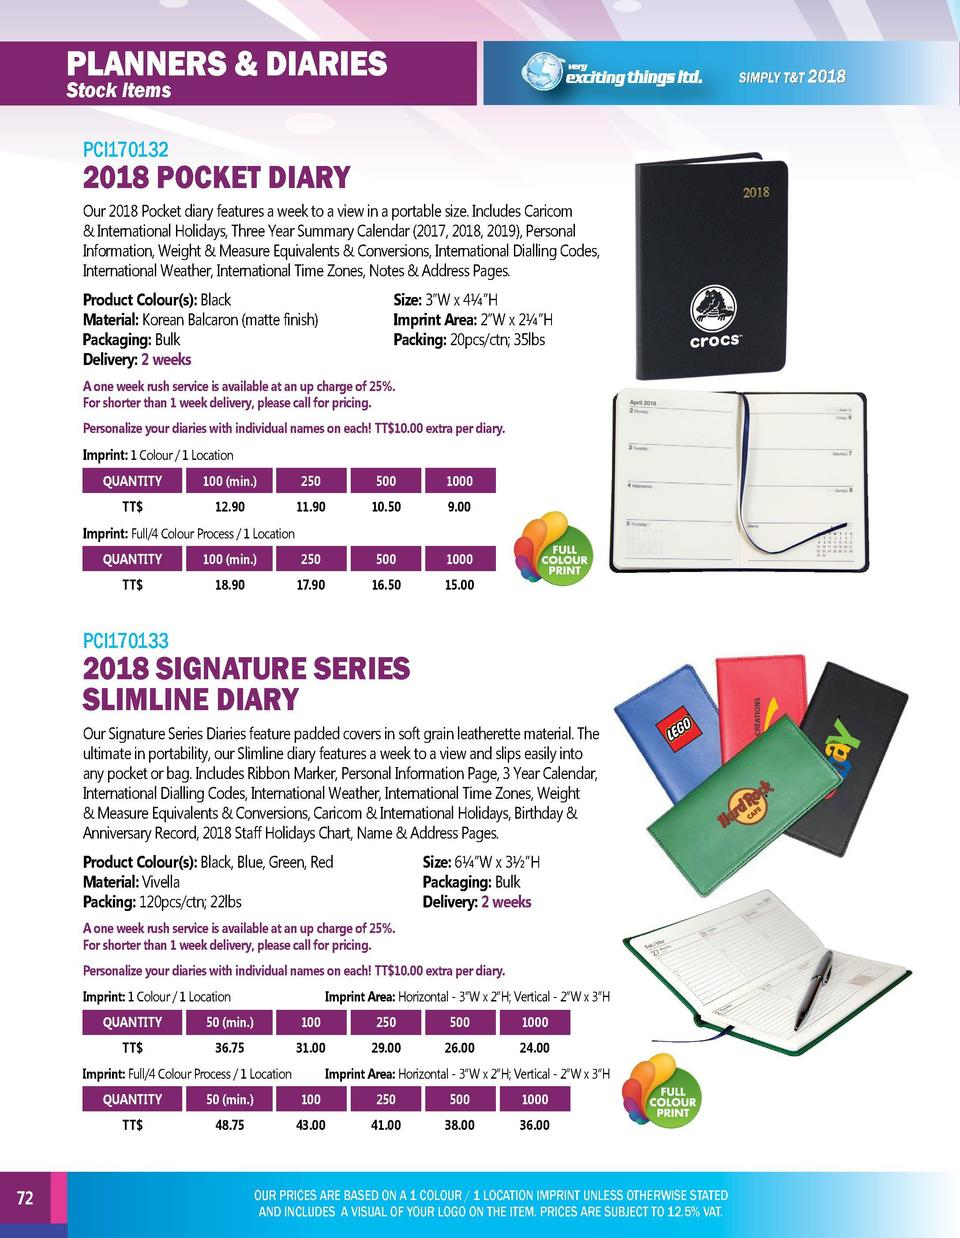 planners   diaries  planners   diaries  Stock Items  Stock Items  PCI170132  PCI170134  2018 POCKET DIARY Our 2018 Pocket ...